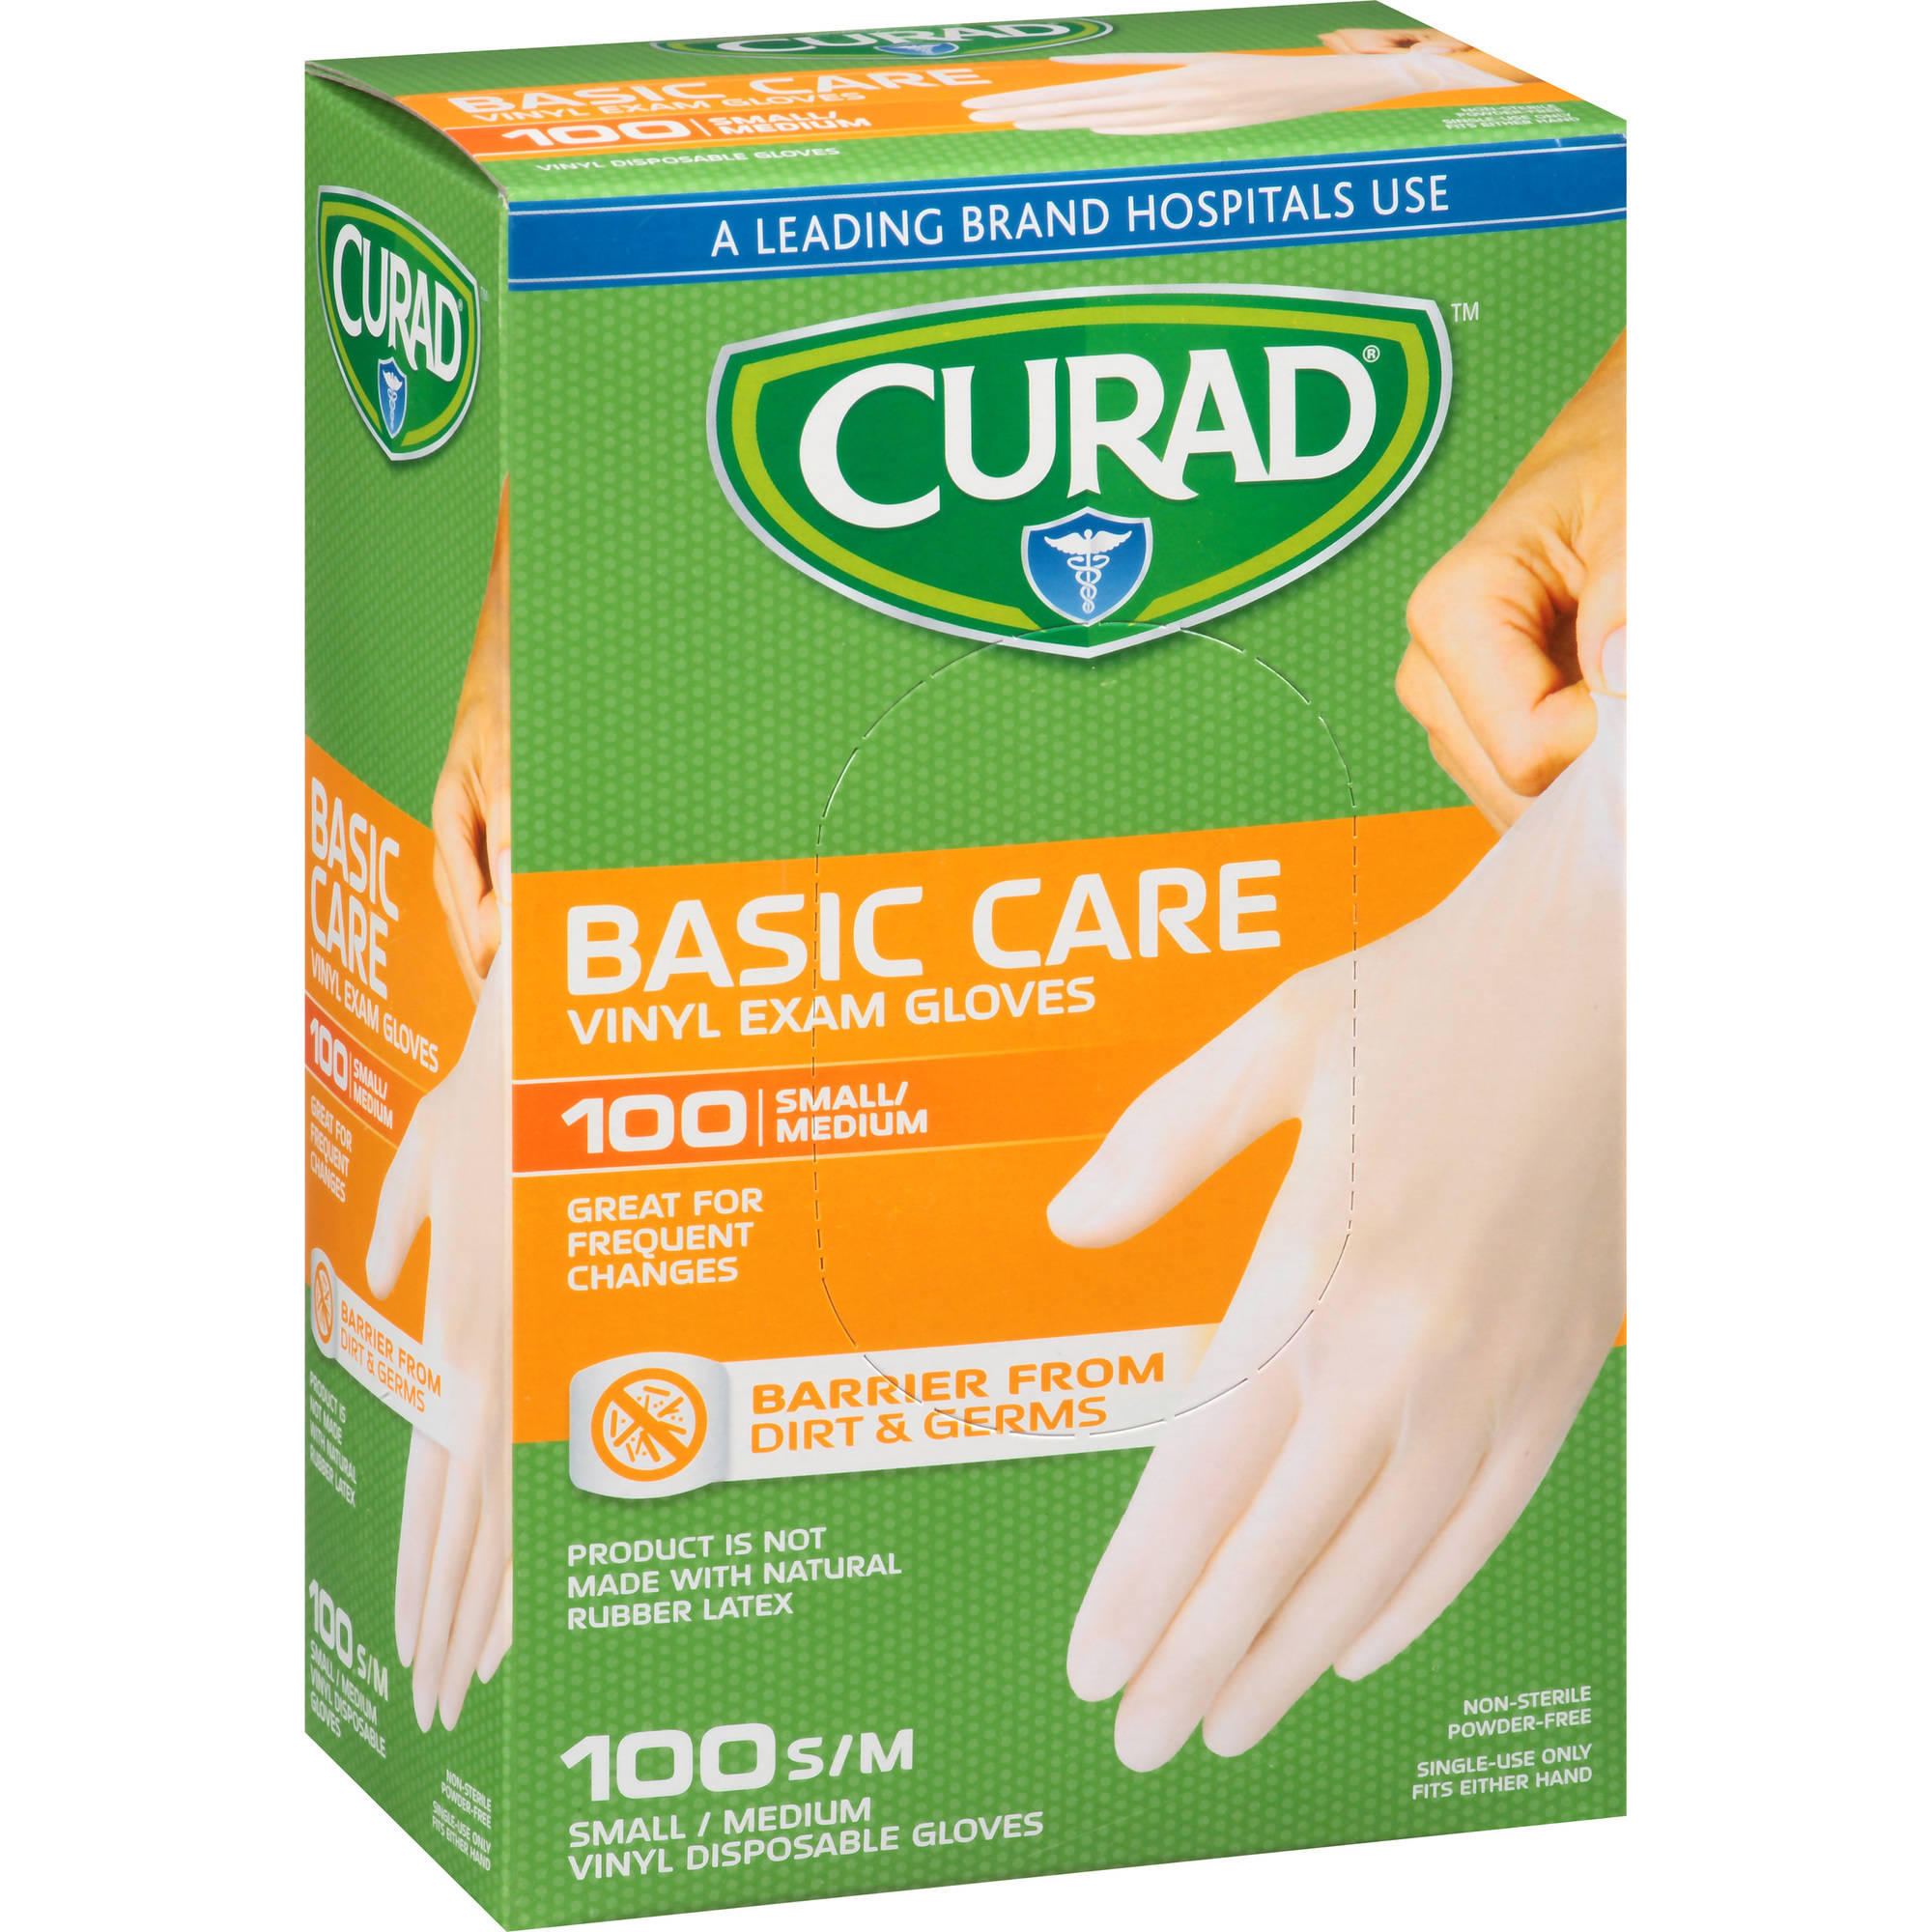 Curad Basic Care Vinyl Exam Gloves, Small/Medium, 100 count